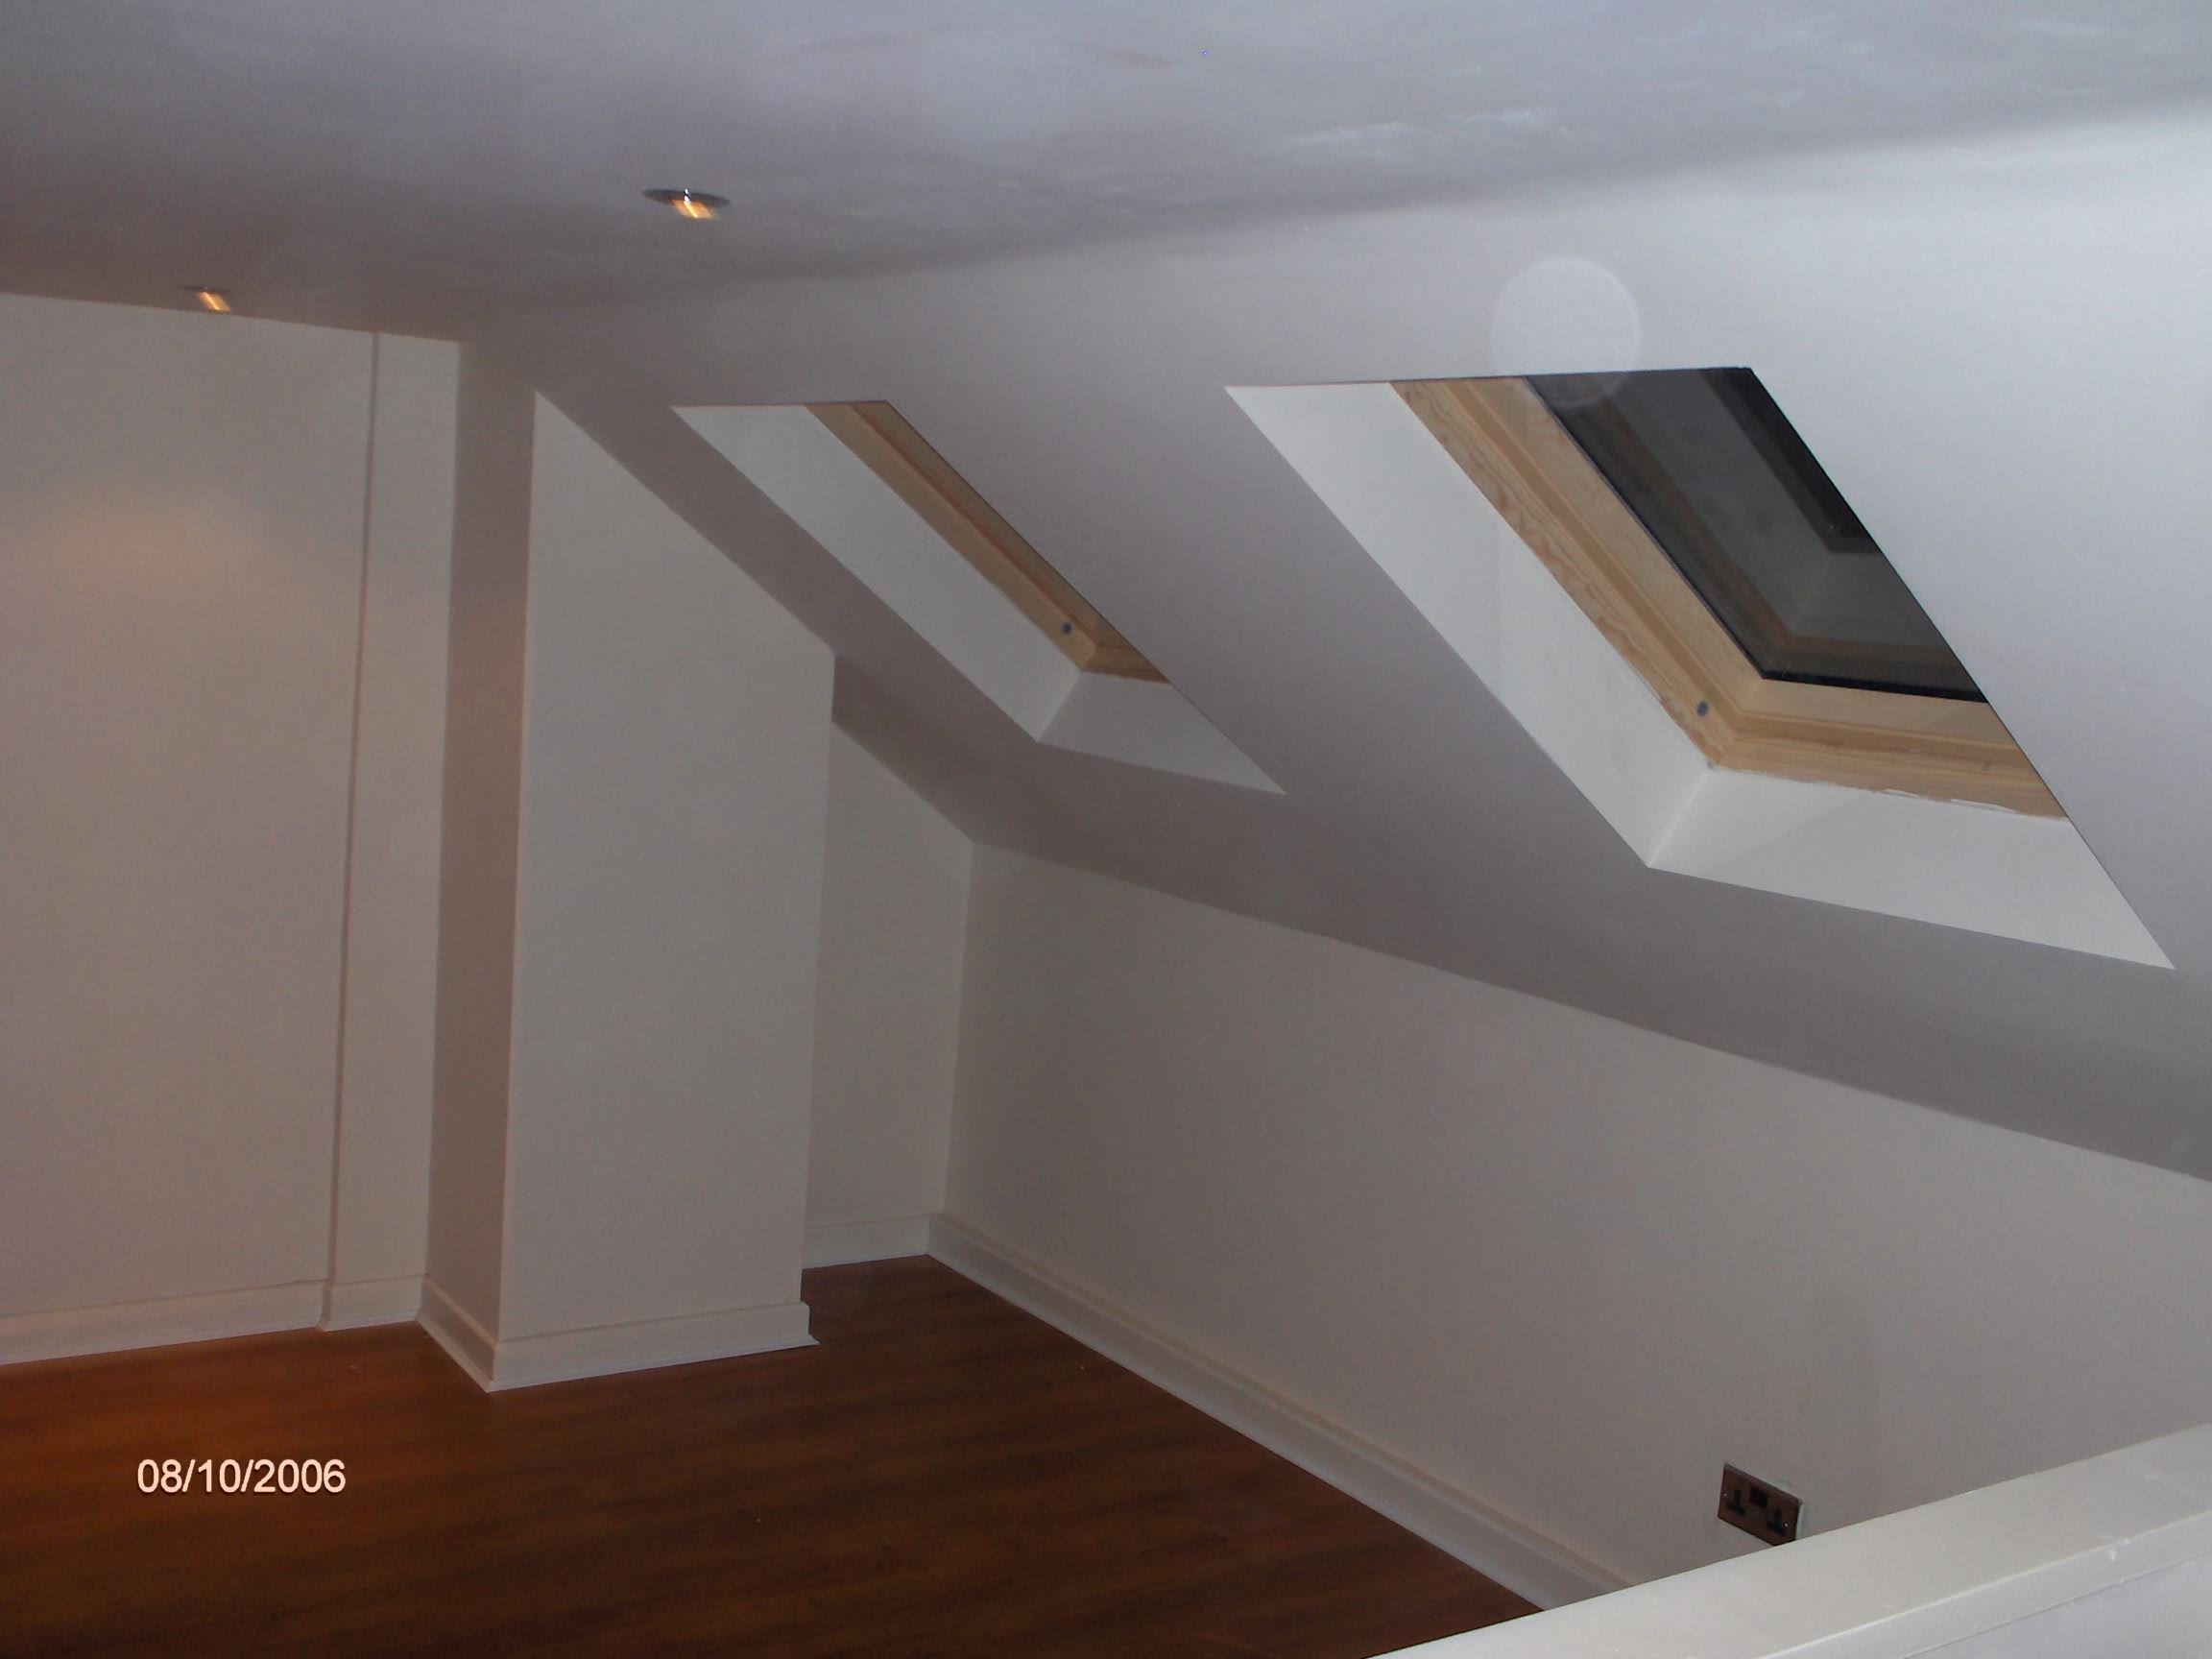 Attic conversions, plaster finish and 2 x velux windows.